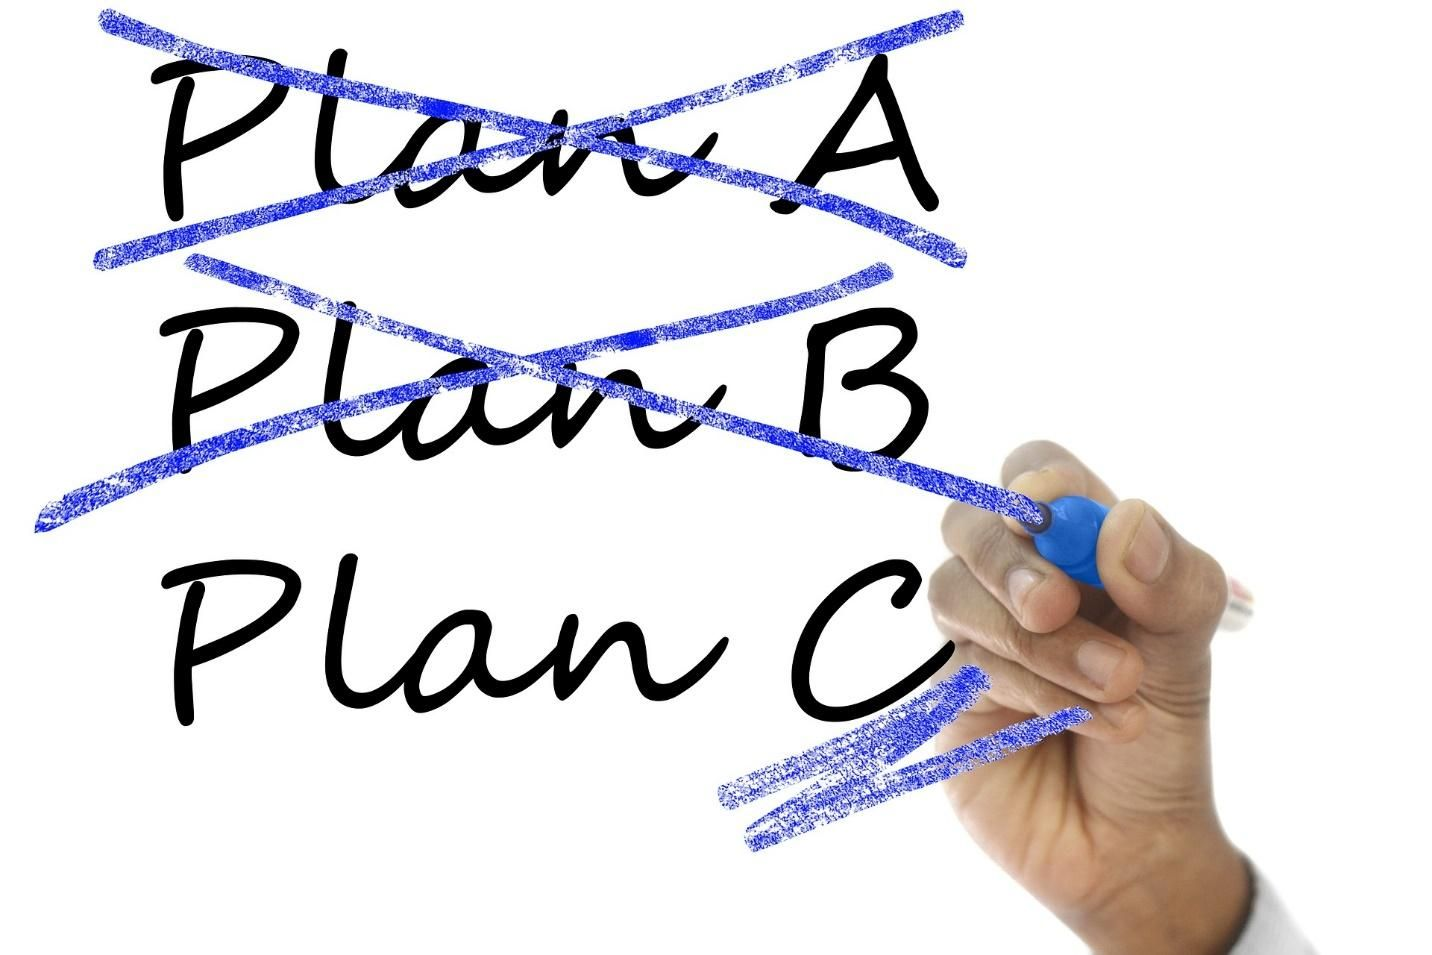 scratching out past plans and adapting to project changes by moving to Plan C